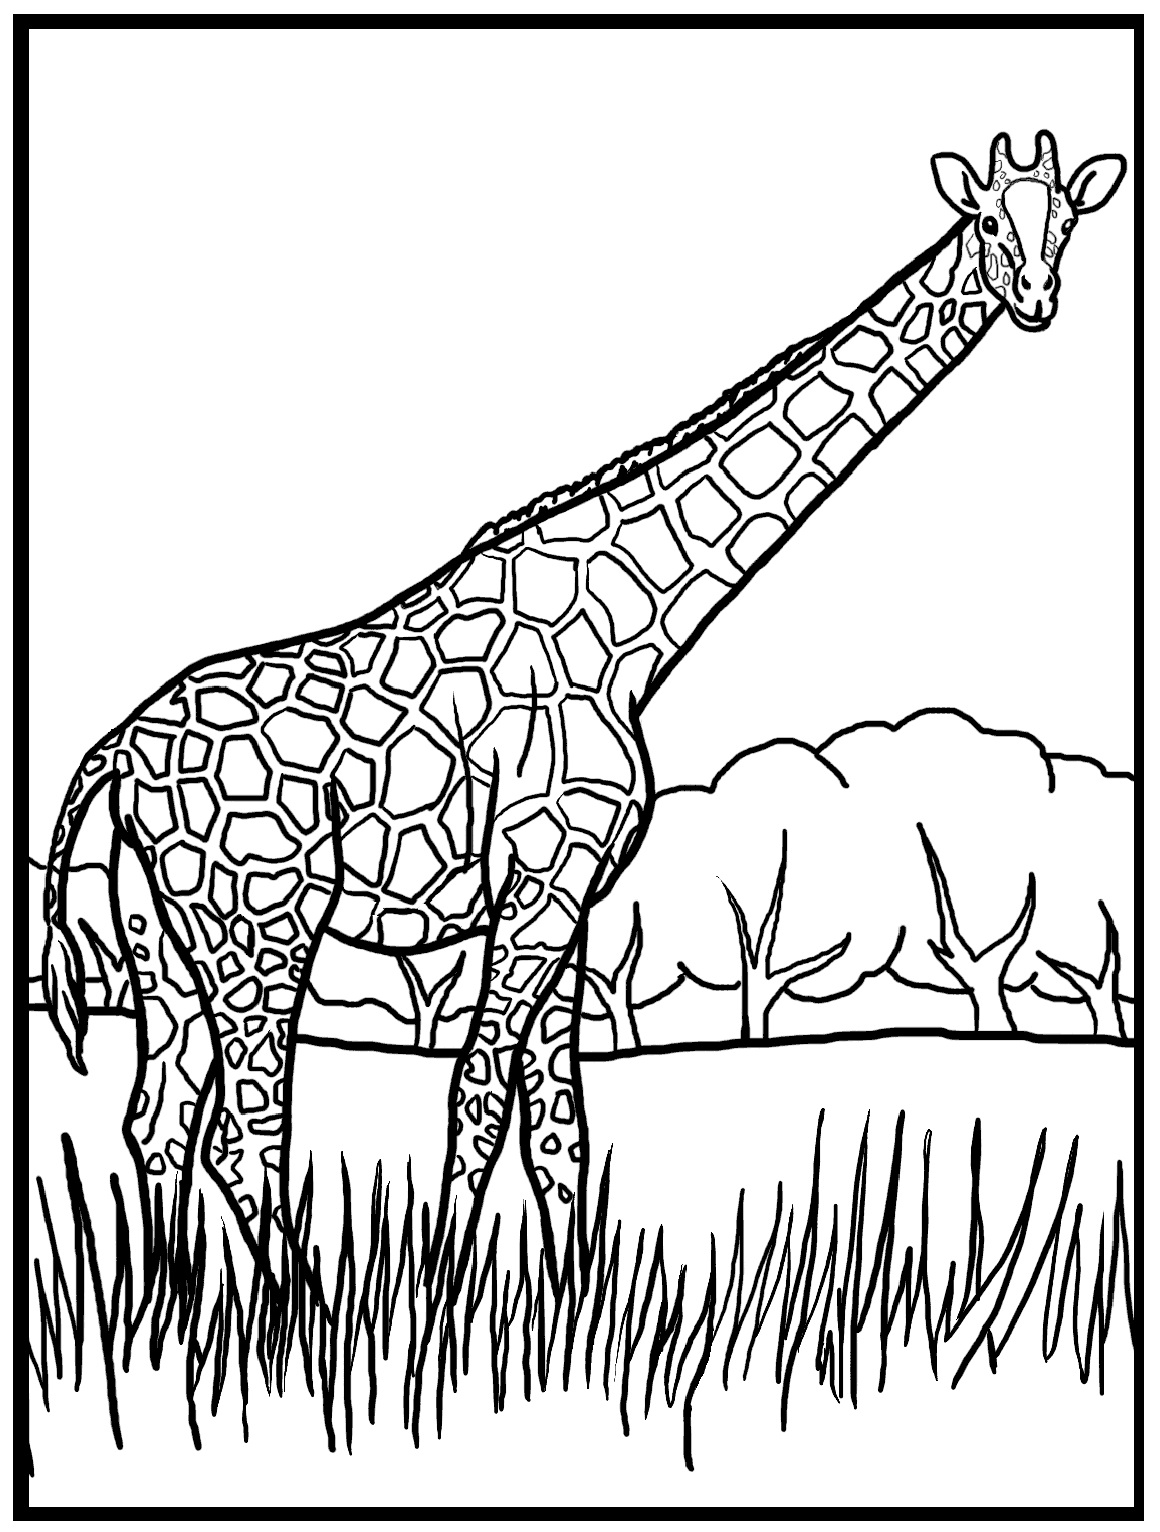 Giraffe Coloring Pages Custom Free Printable Giraffe Coloring Pages For Kids Inspiration